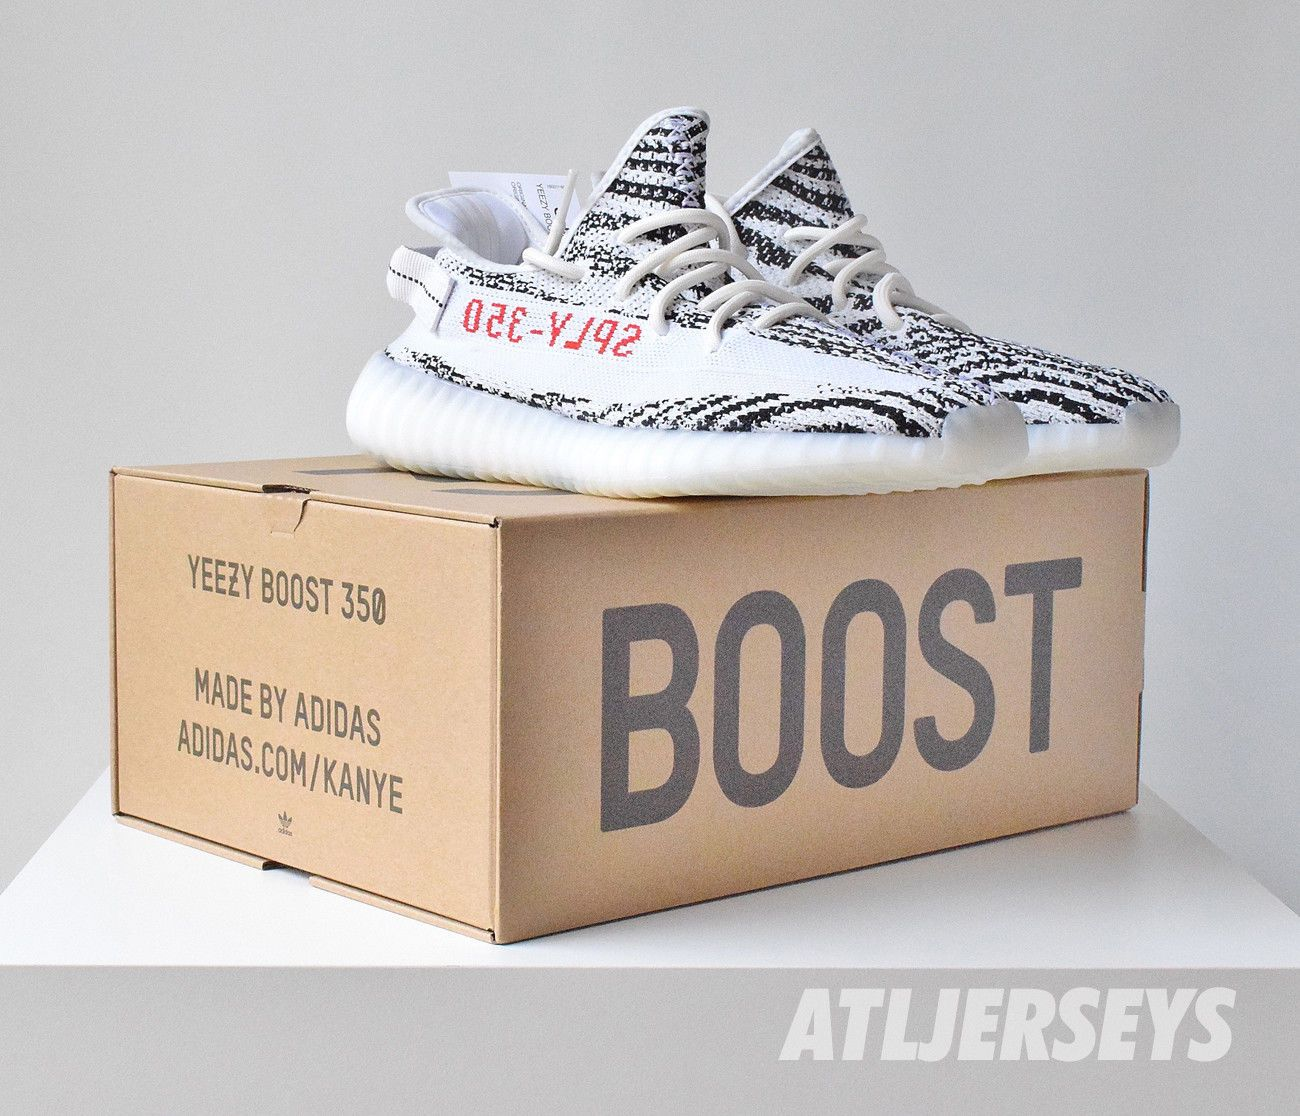 29aade95b Adidas Yeezy Boost 350 V2 Zebra Kanye 100% Authentic White Red Size 4-14